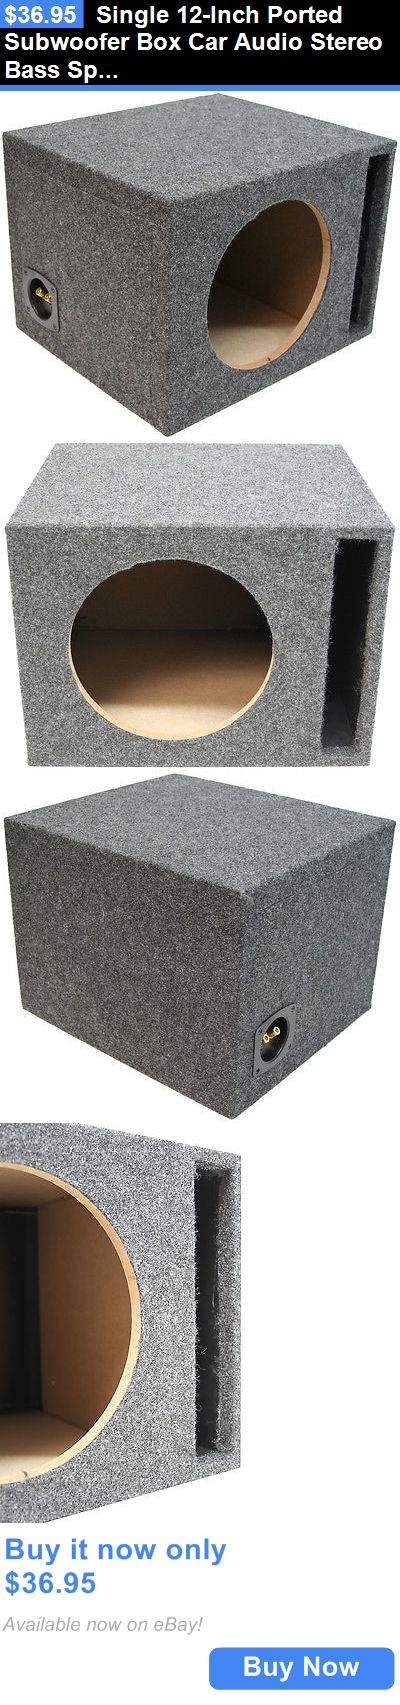 Car Subwoofers: Single 12-Inch Ported Subwoofer Box Car Audio Stereo Bass Speaker Sub Enclosure BUY IT NOW ONLY: $36.95